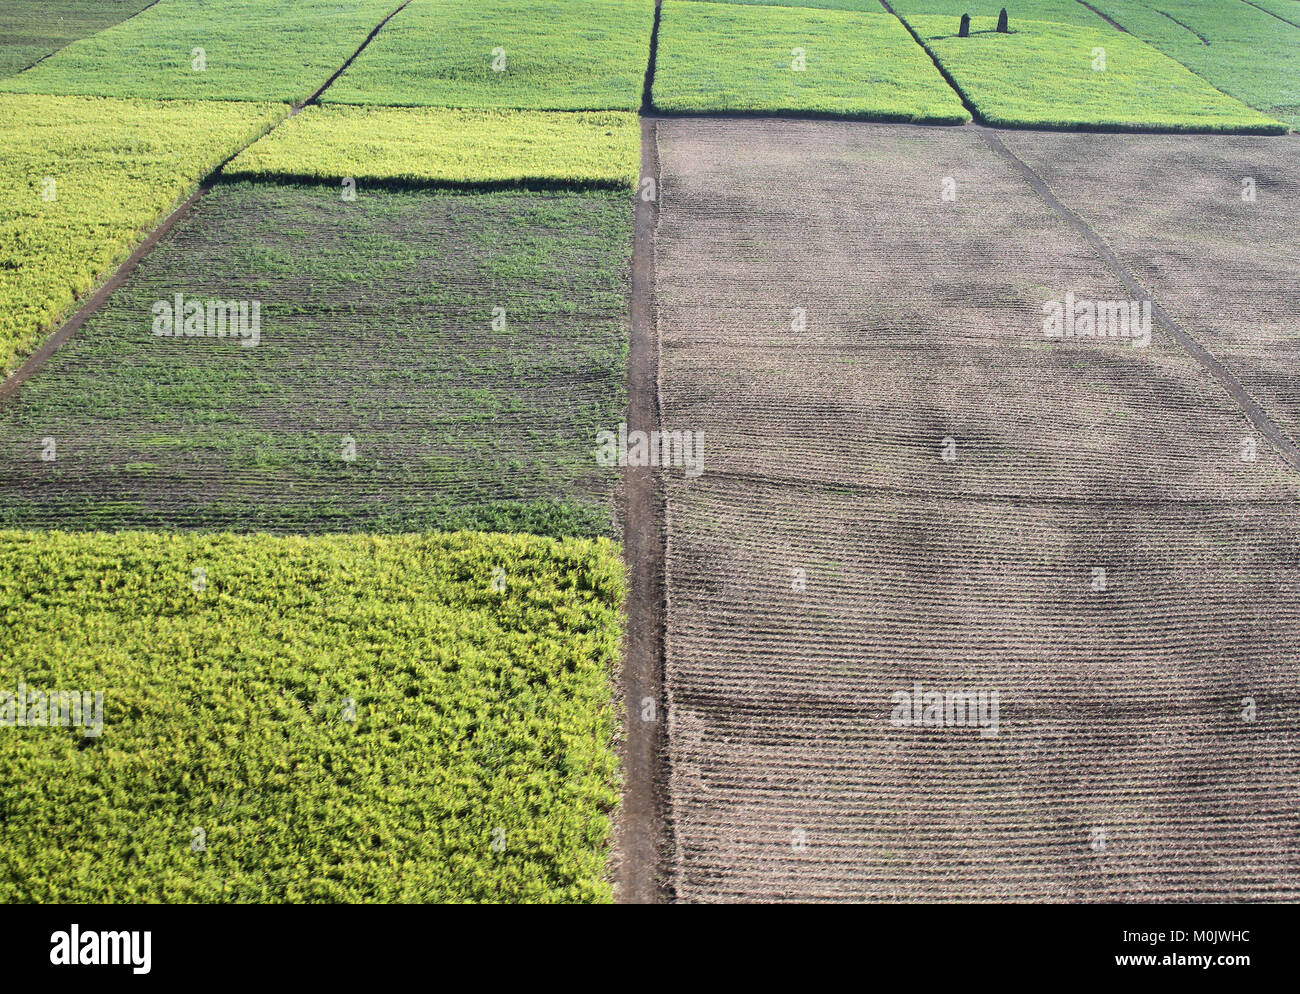 Aerial view of agricultural fields from a helicopter, The Republic of Mauritius. - Stock Image